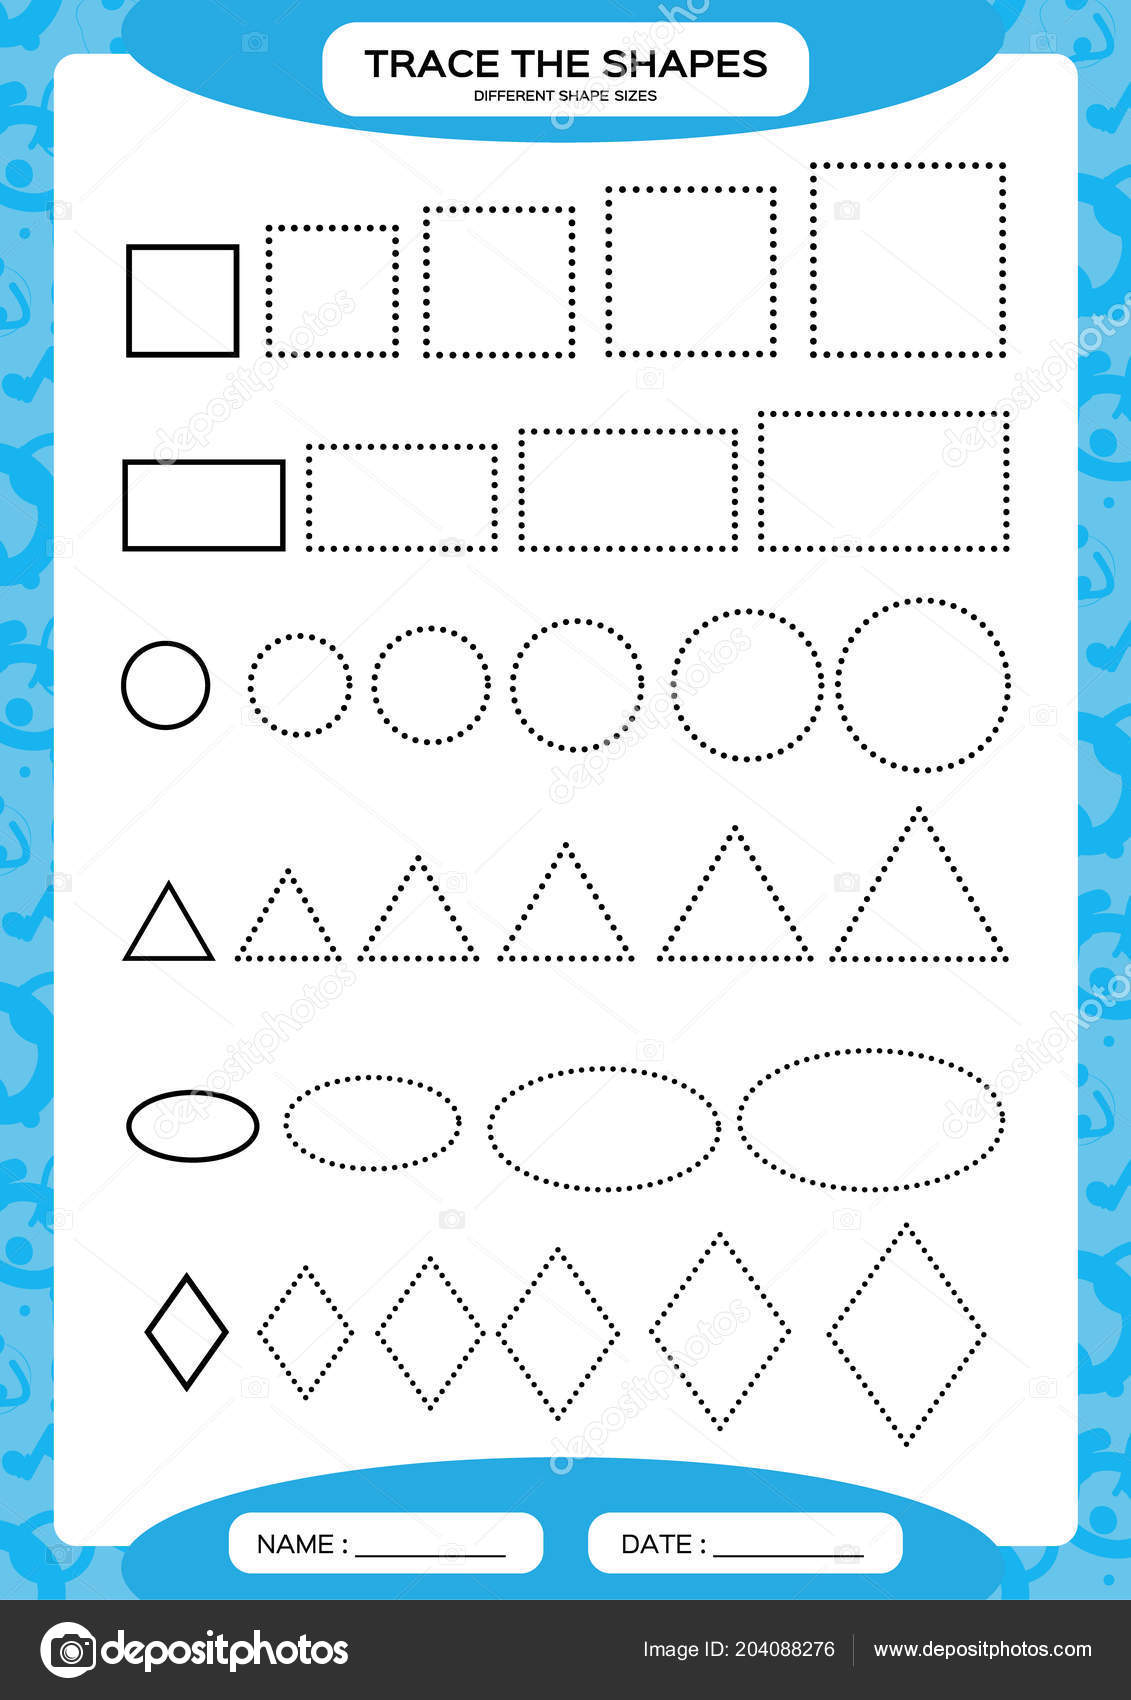 Different Shape Sizes Learning Basic Shapes Trace Draw